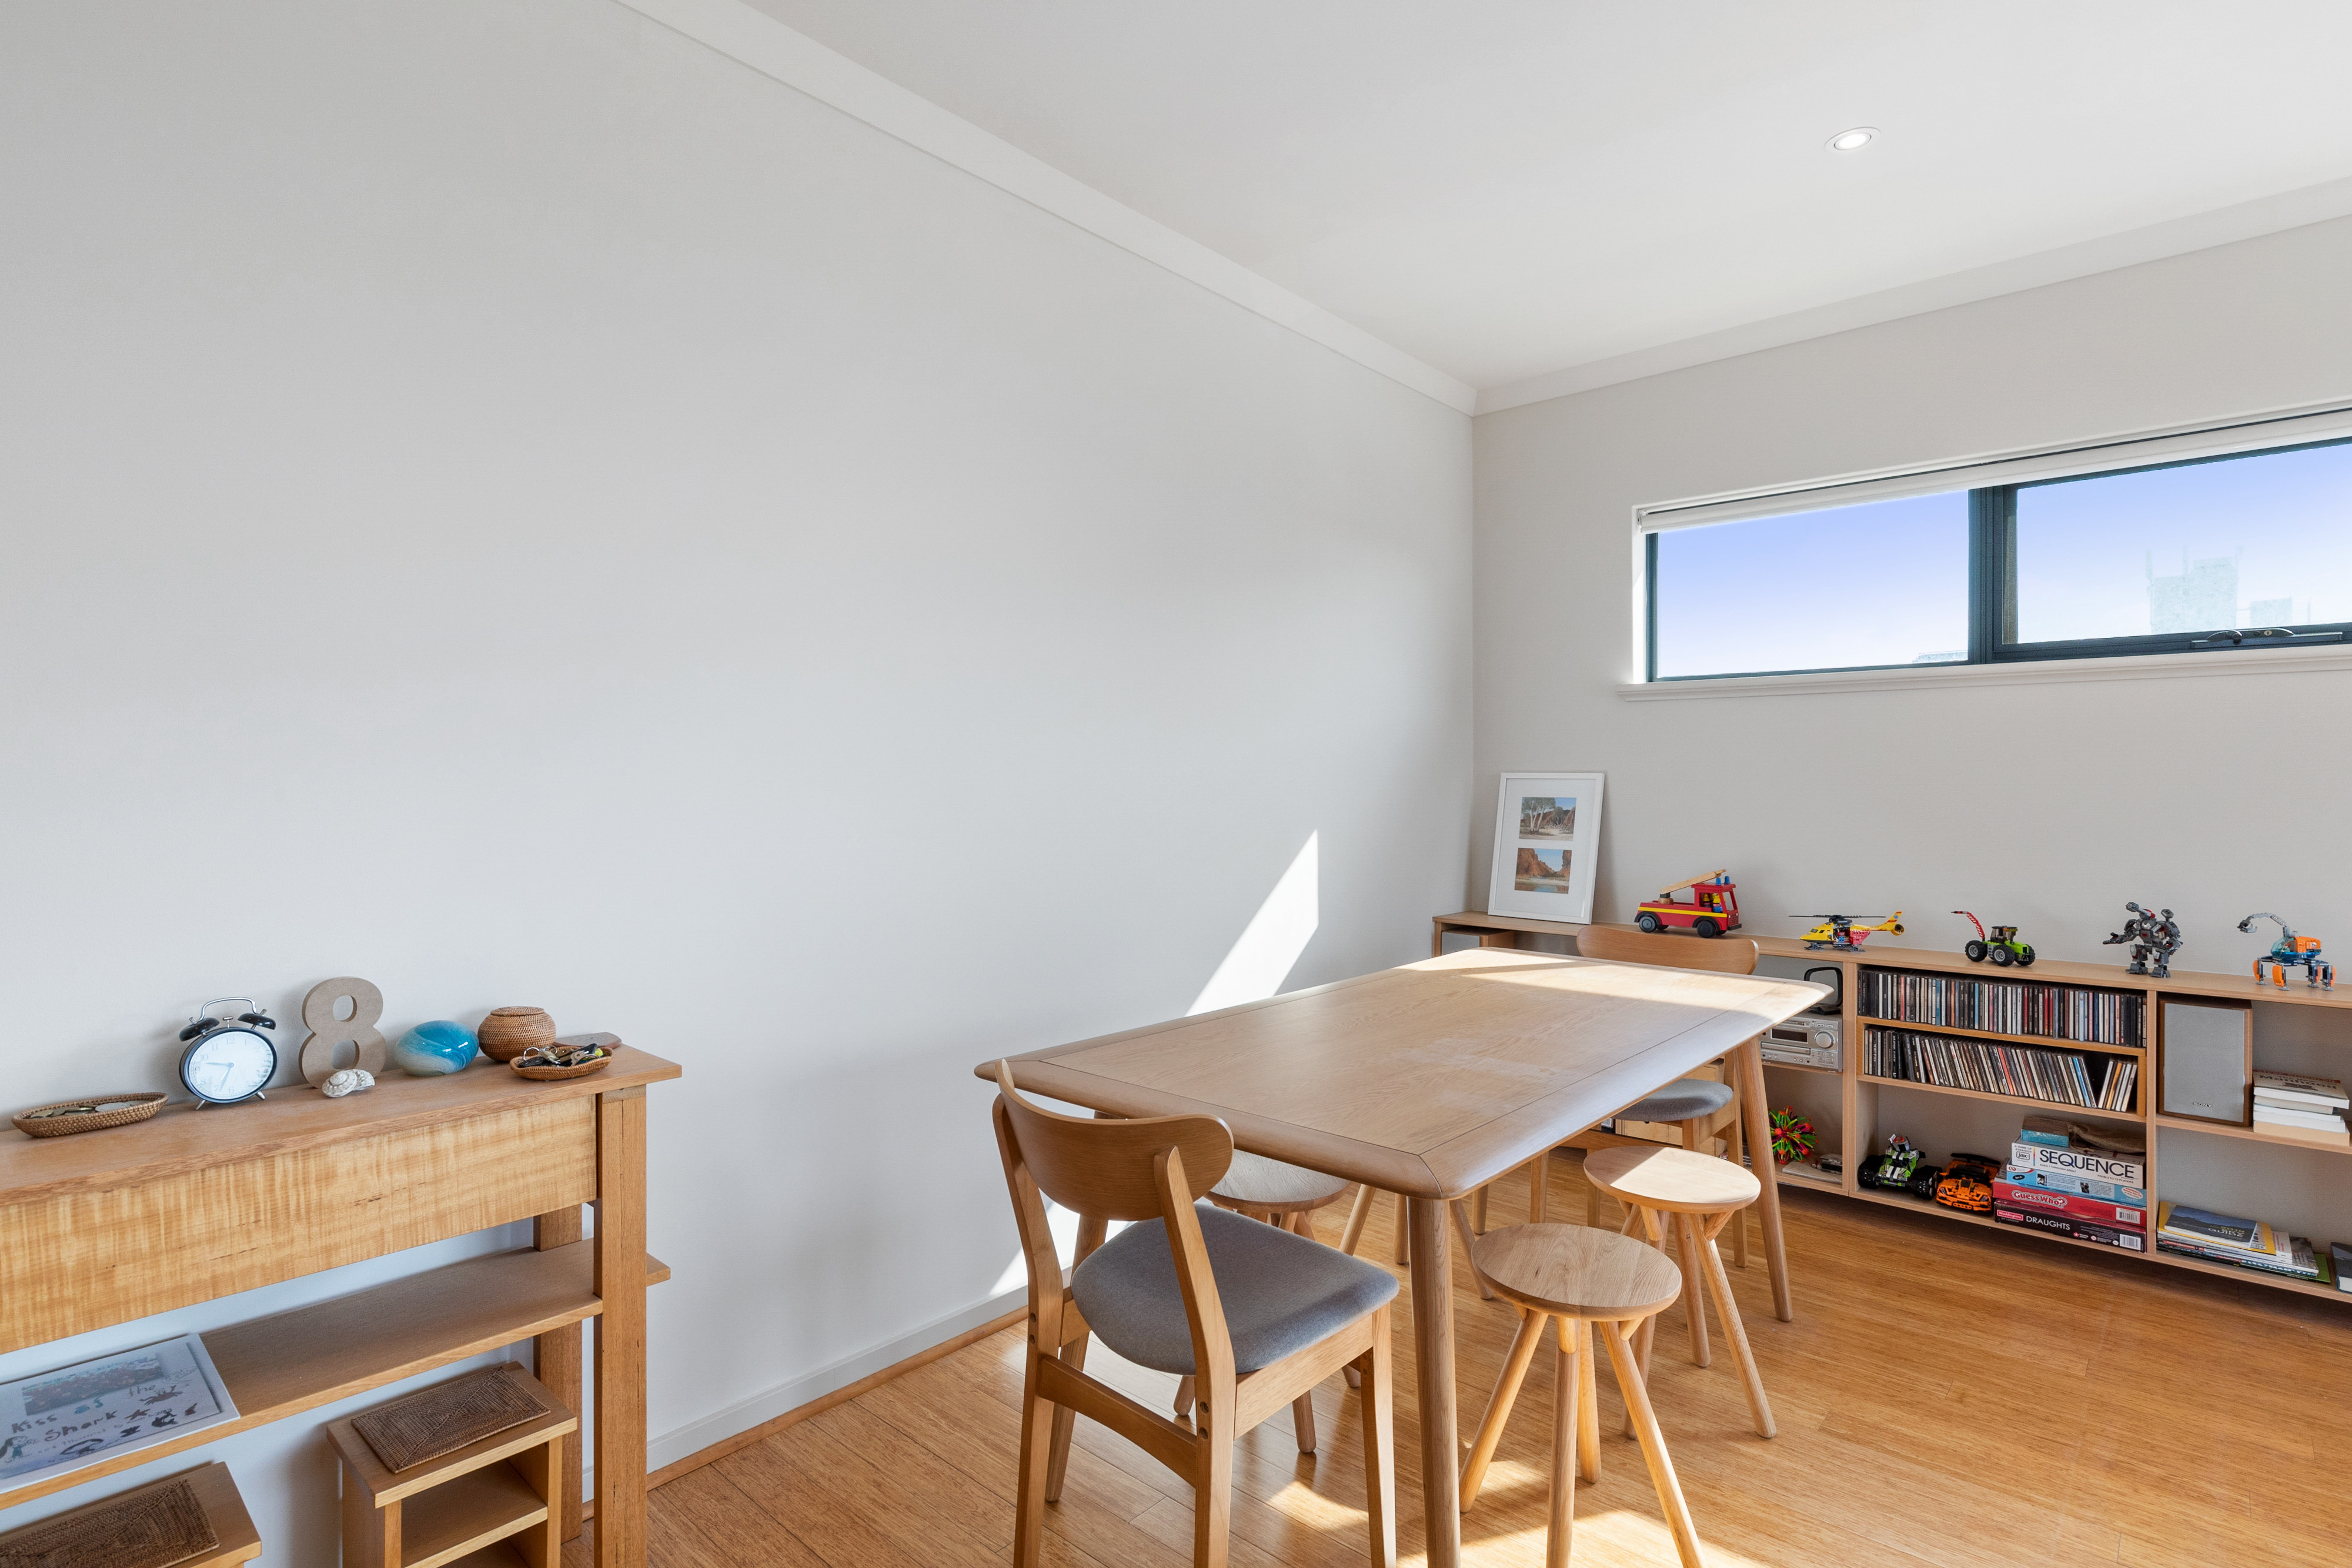 PRINT 404 48 Outram St, West Perth 11